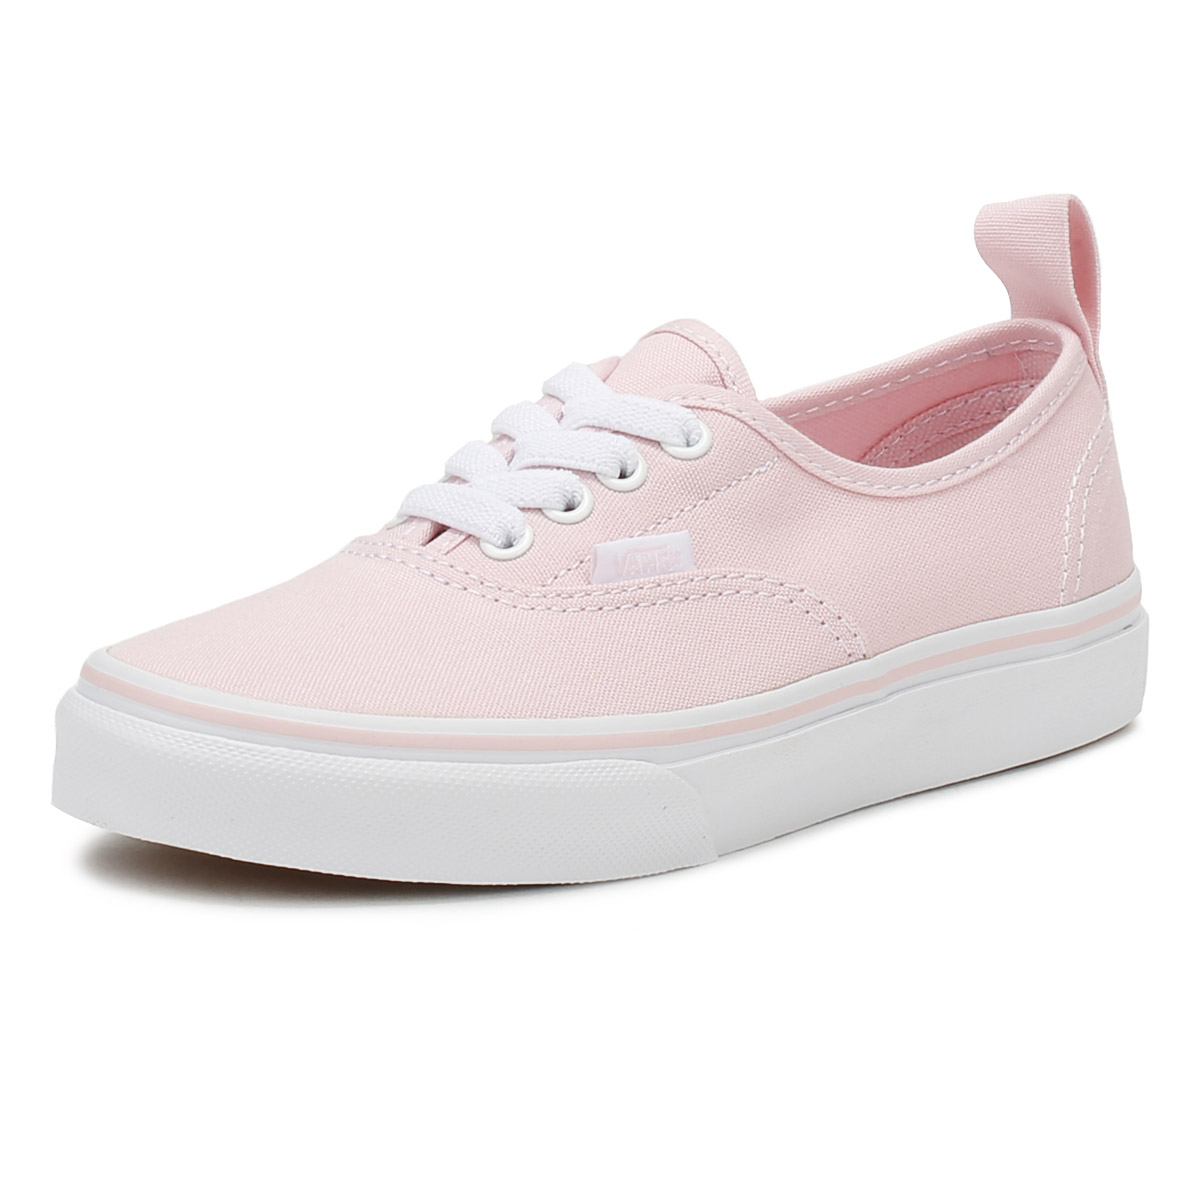 36bfa28515 Details about Vans Kids Chalk Pink   True White Authentic Trainers Girls  Skate Shoes